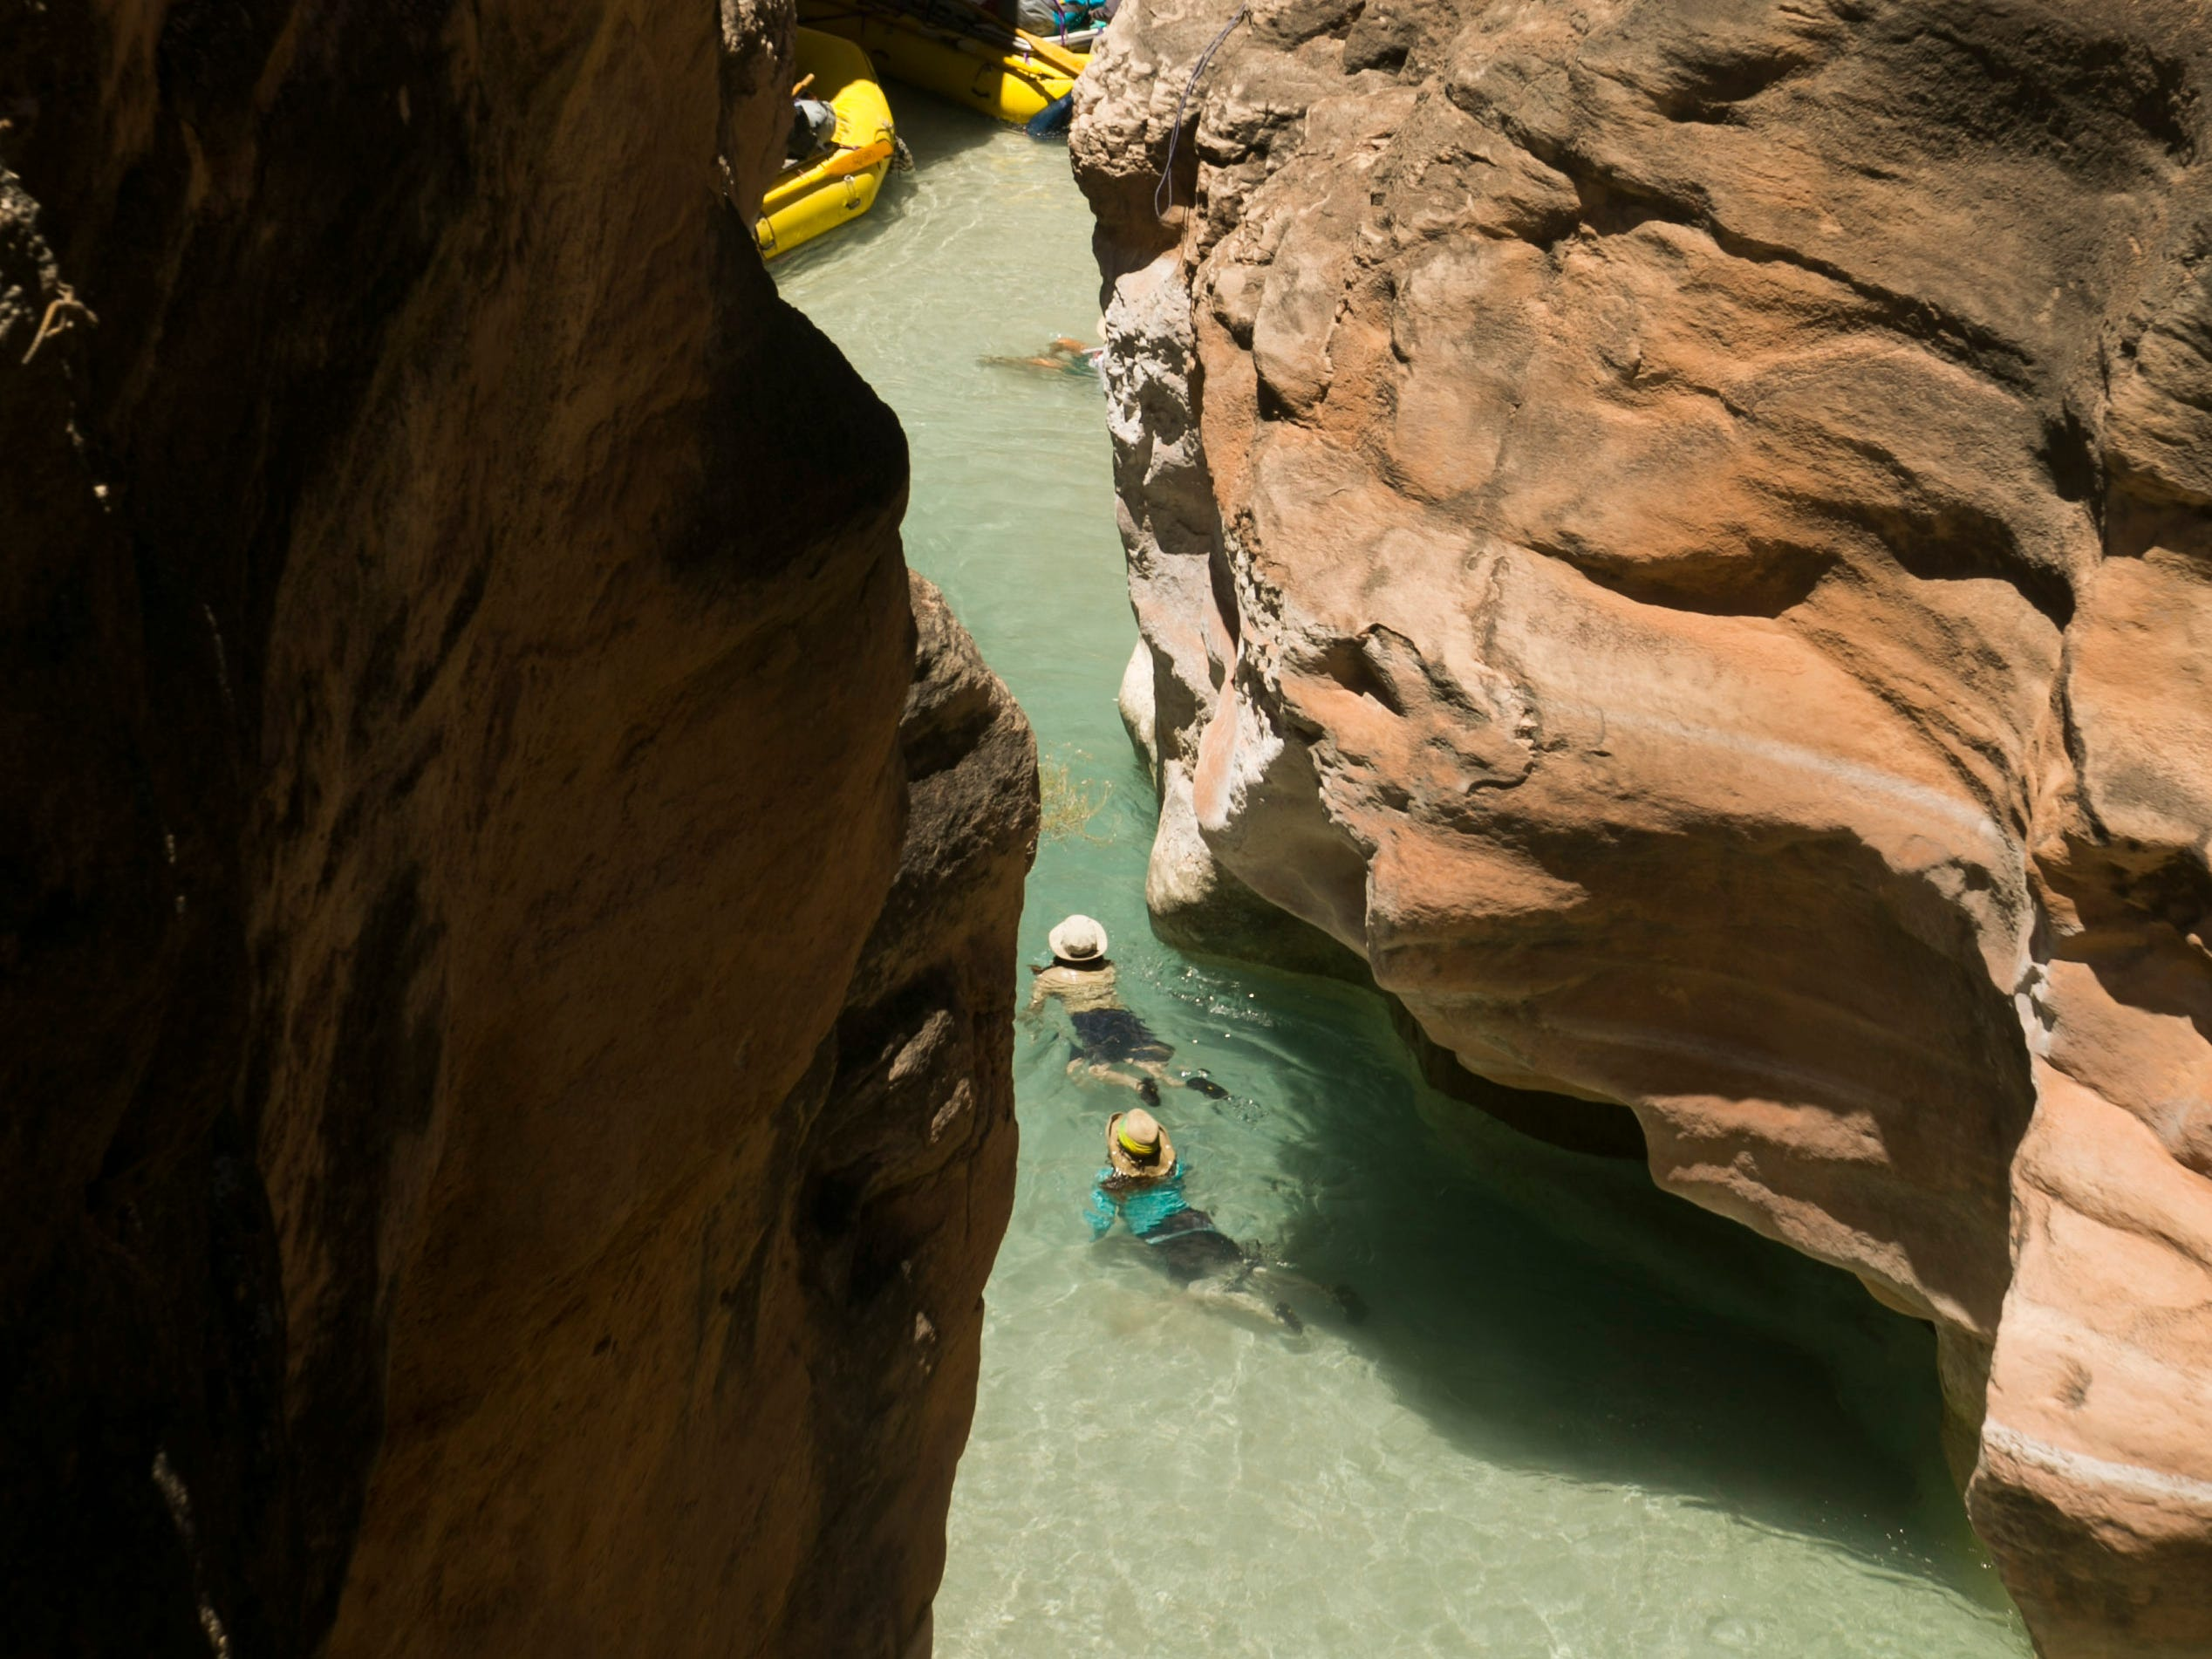 River runners exit the narrows of Havasu Creek to their boats at the confluence of the Colorado River in Grand Canyon National Park. Havasu Creek gets its aqua-blue color from the calcium carbonate in the water. Hundreds of side canyon drainages meet the Colorado River in Grand Canyon and offer a glimpse into something not impacted by Glen Canyon Dam.